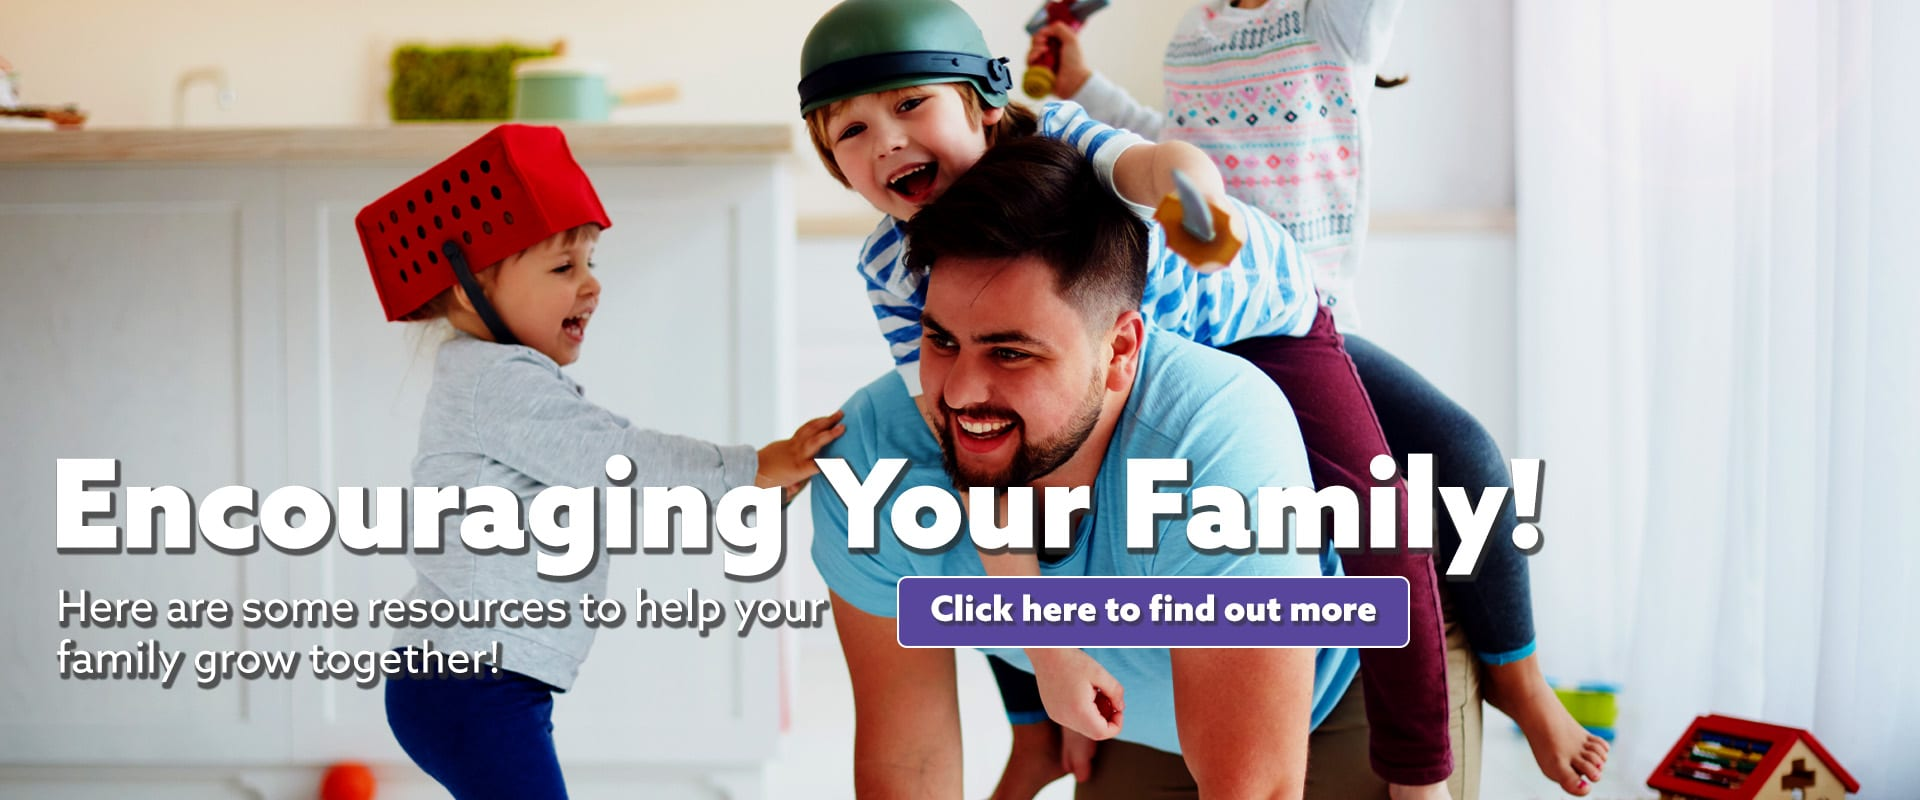 Encouraging-Your-Family-Lift